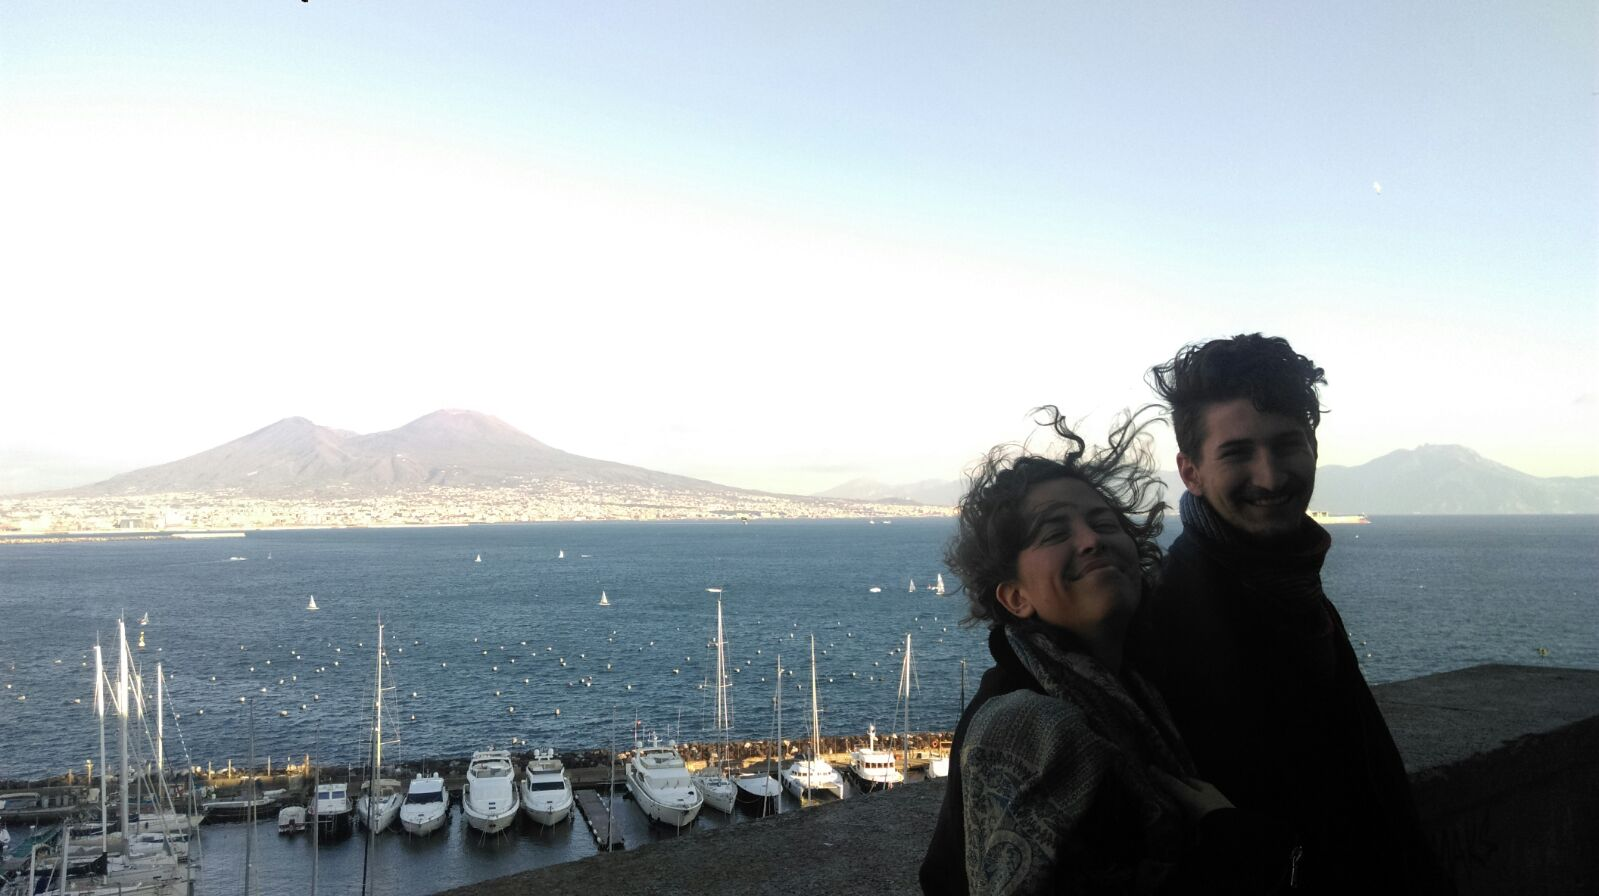 Naples Mount Vesuvius